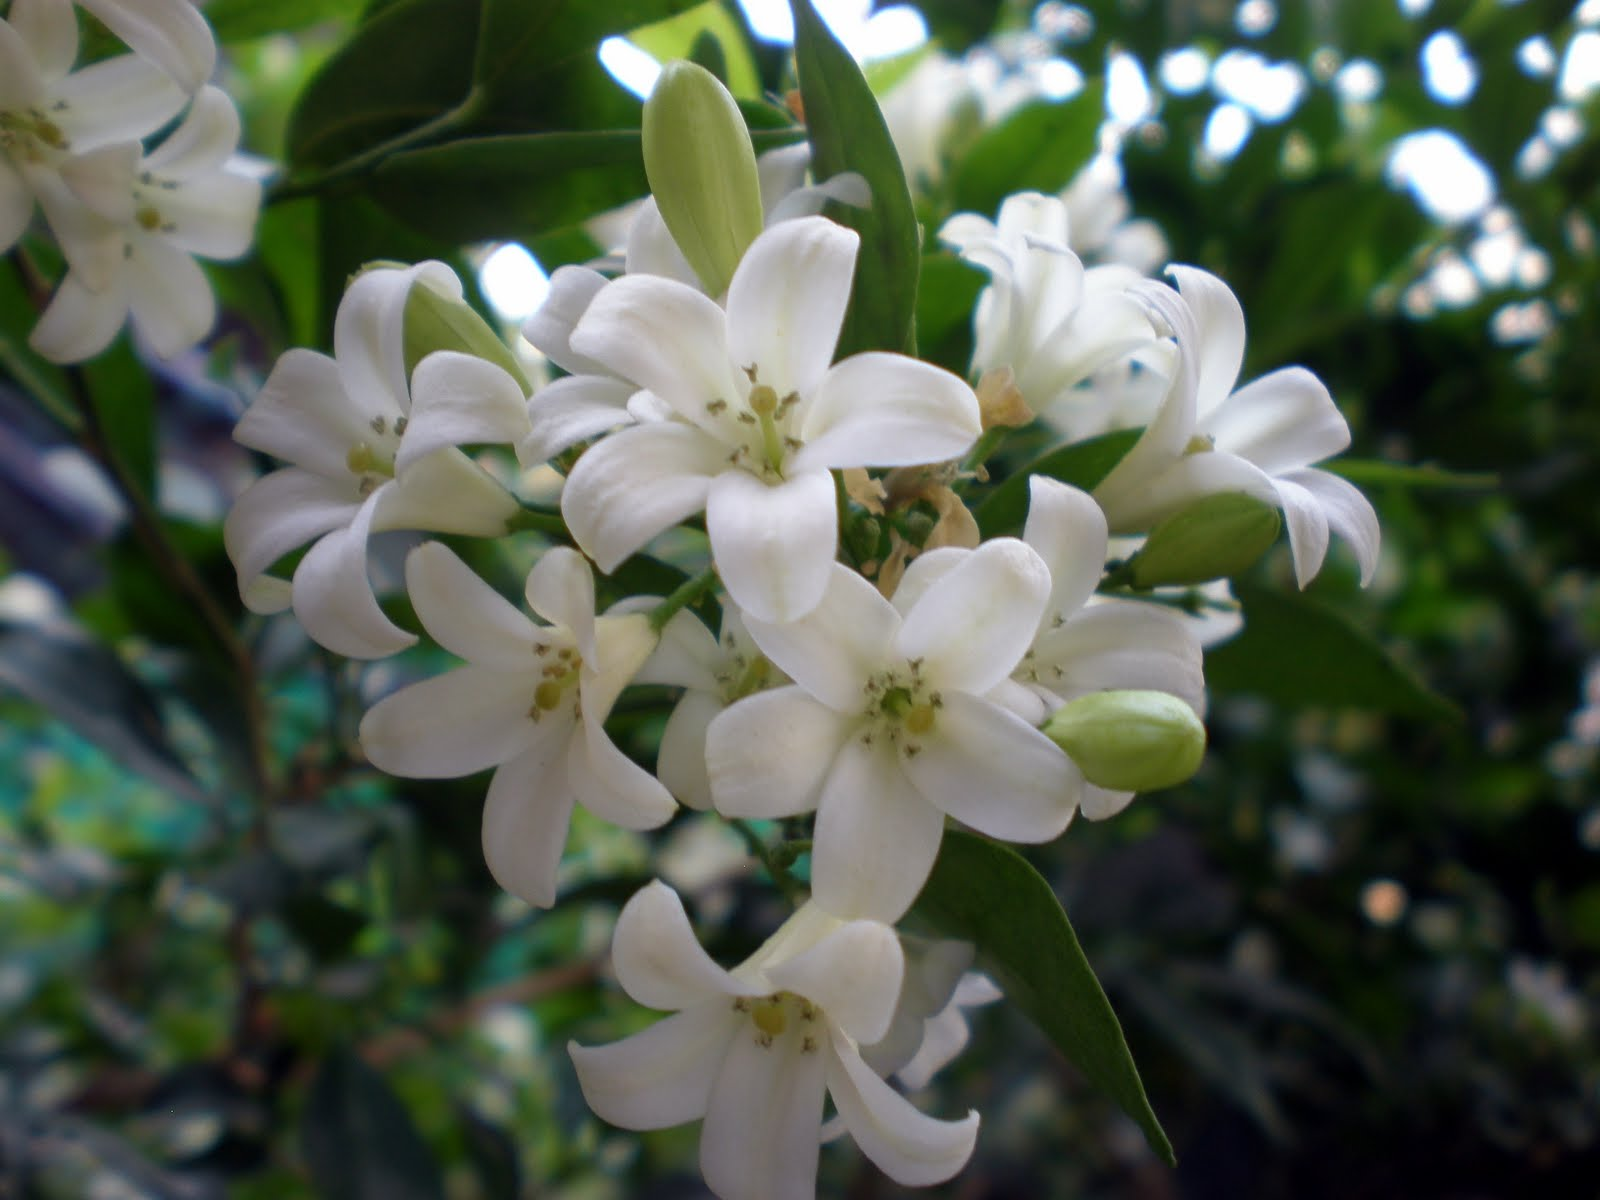 White flowers by name 5 widescreen wallpaper hdflowerwallpaper white flowers by name 5 widescreen wallpaper mightylinksfo